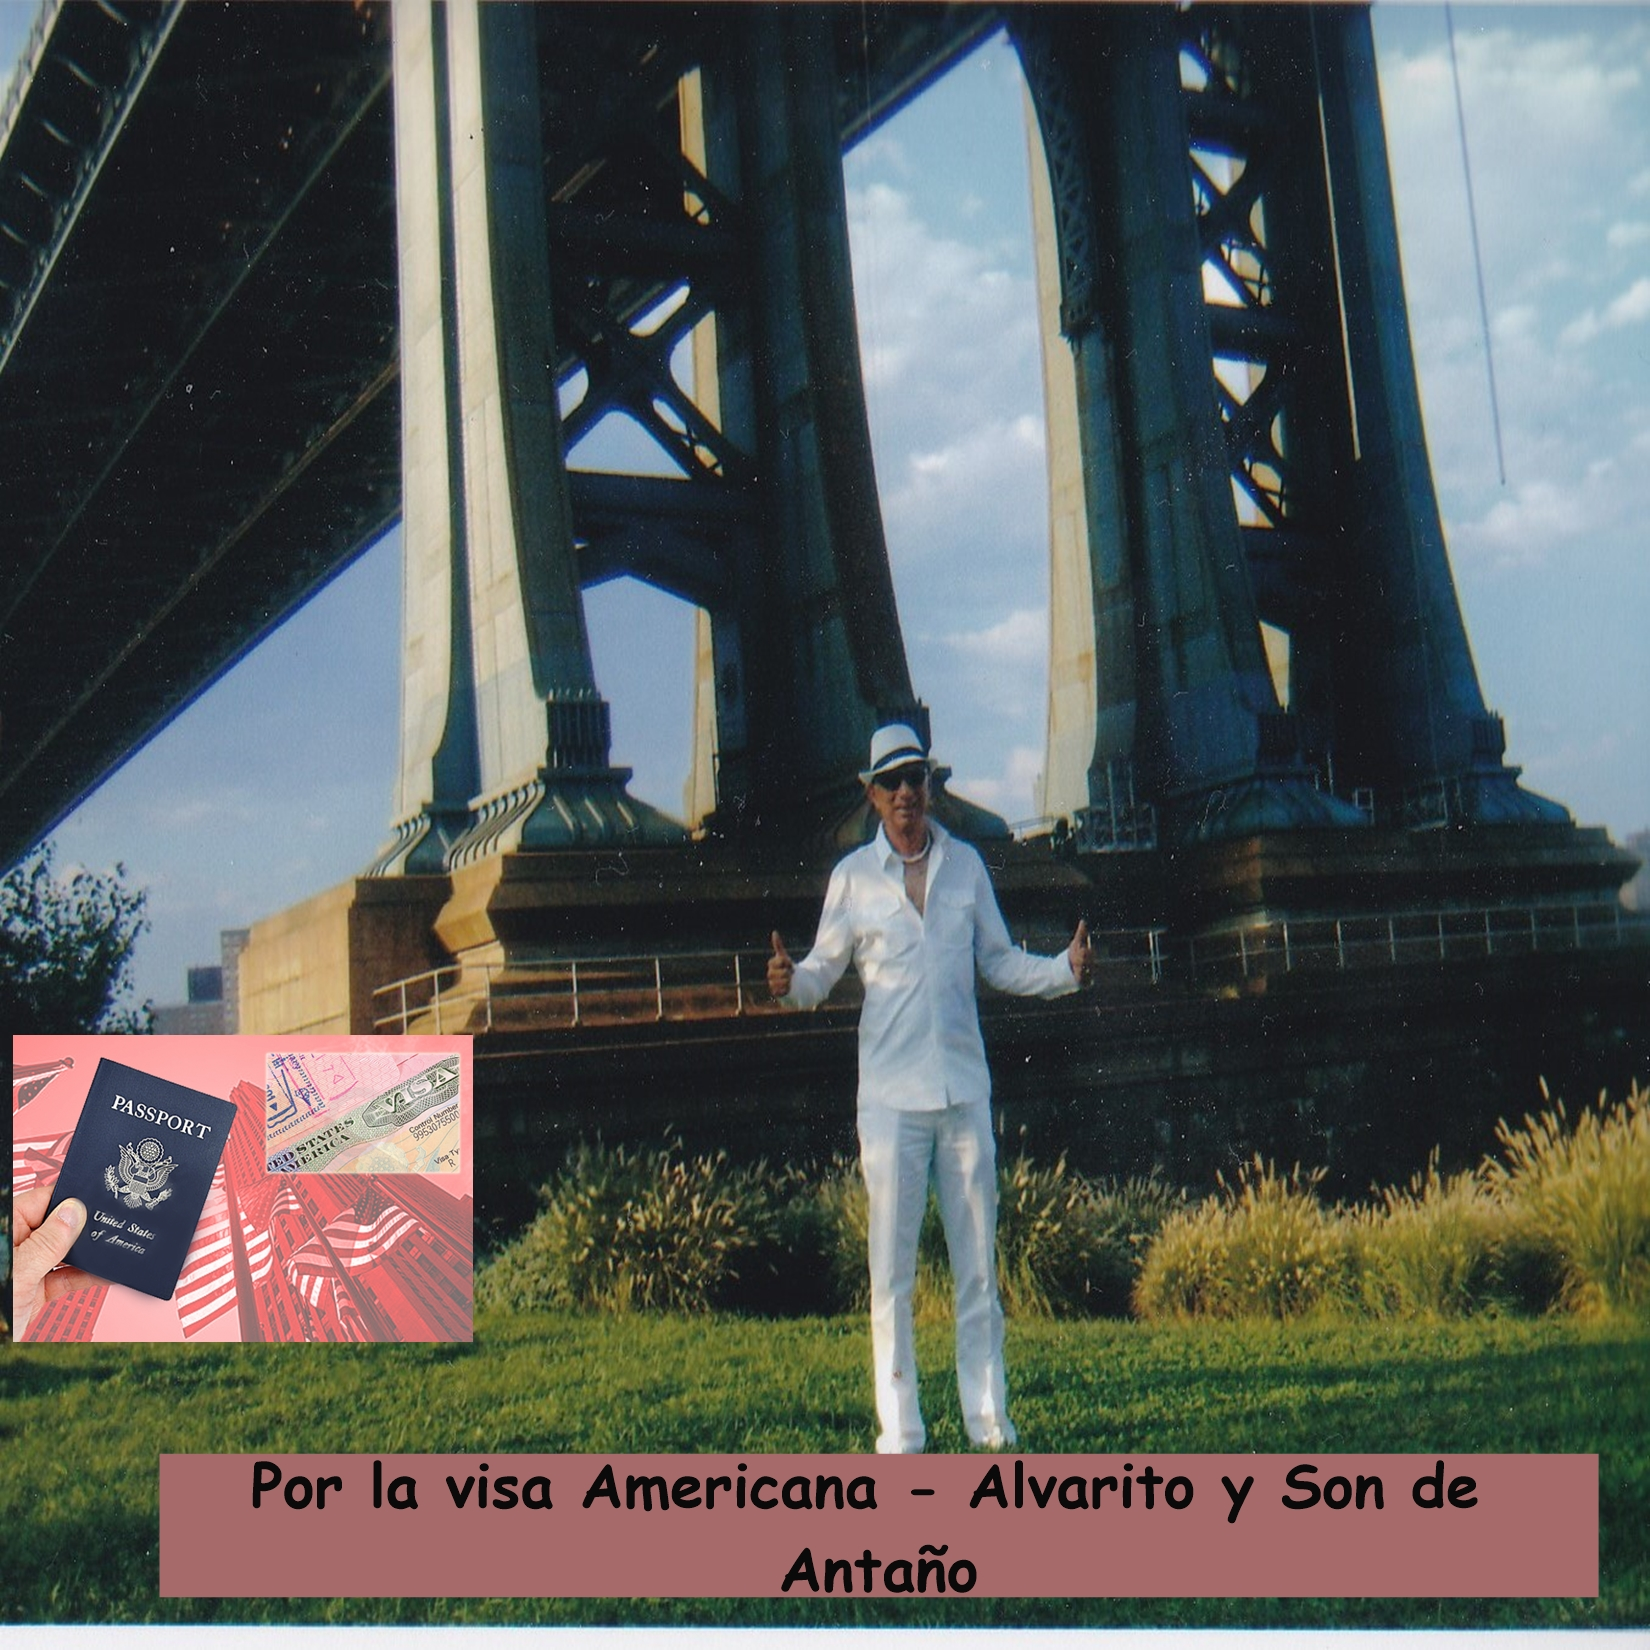 An Artist with Salsa Music in Its Purest Form: Introducing to the World Alvarito y Son de Antaño